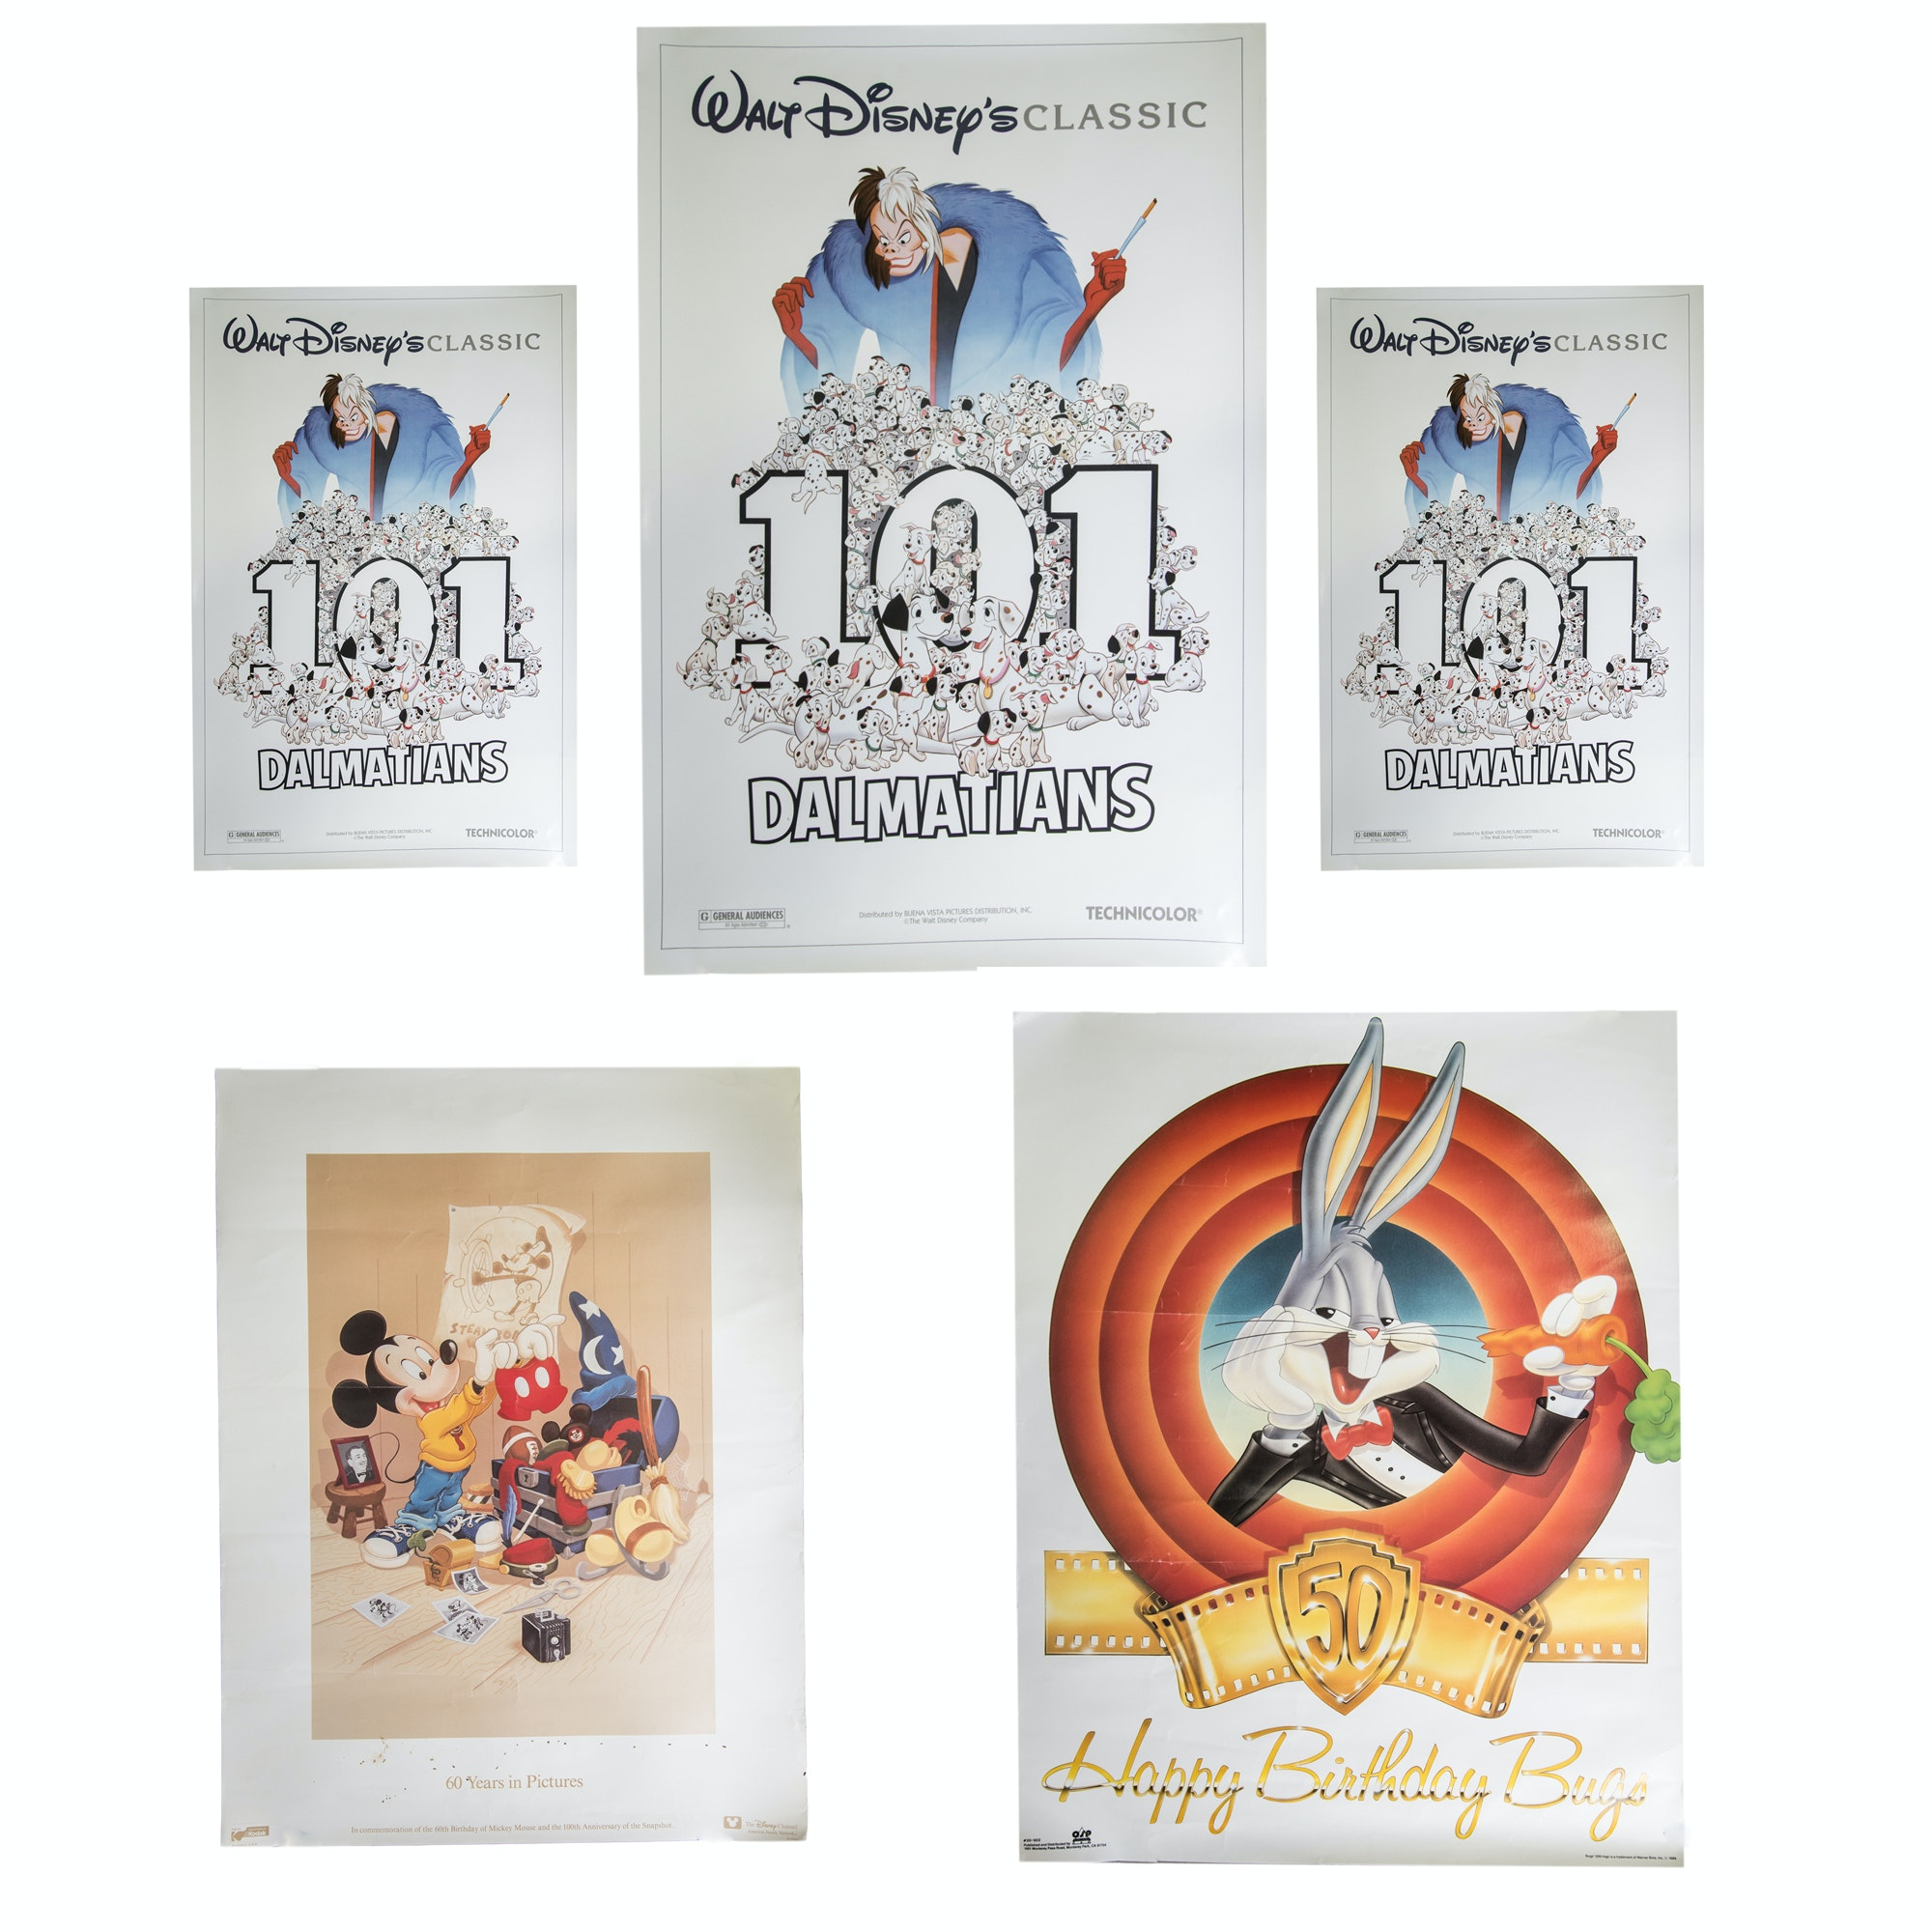 Walt Disney and Warner Brothers Offset Lithograph Posters